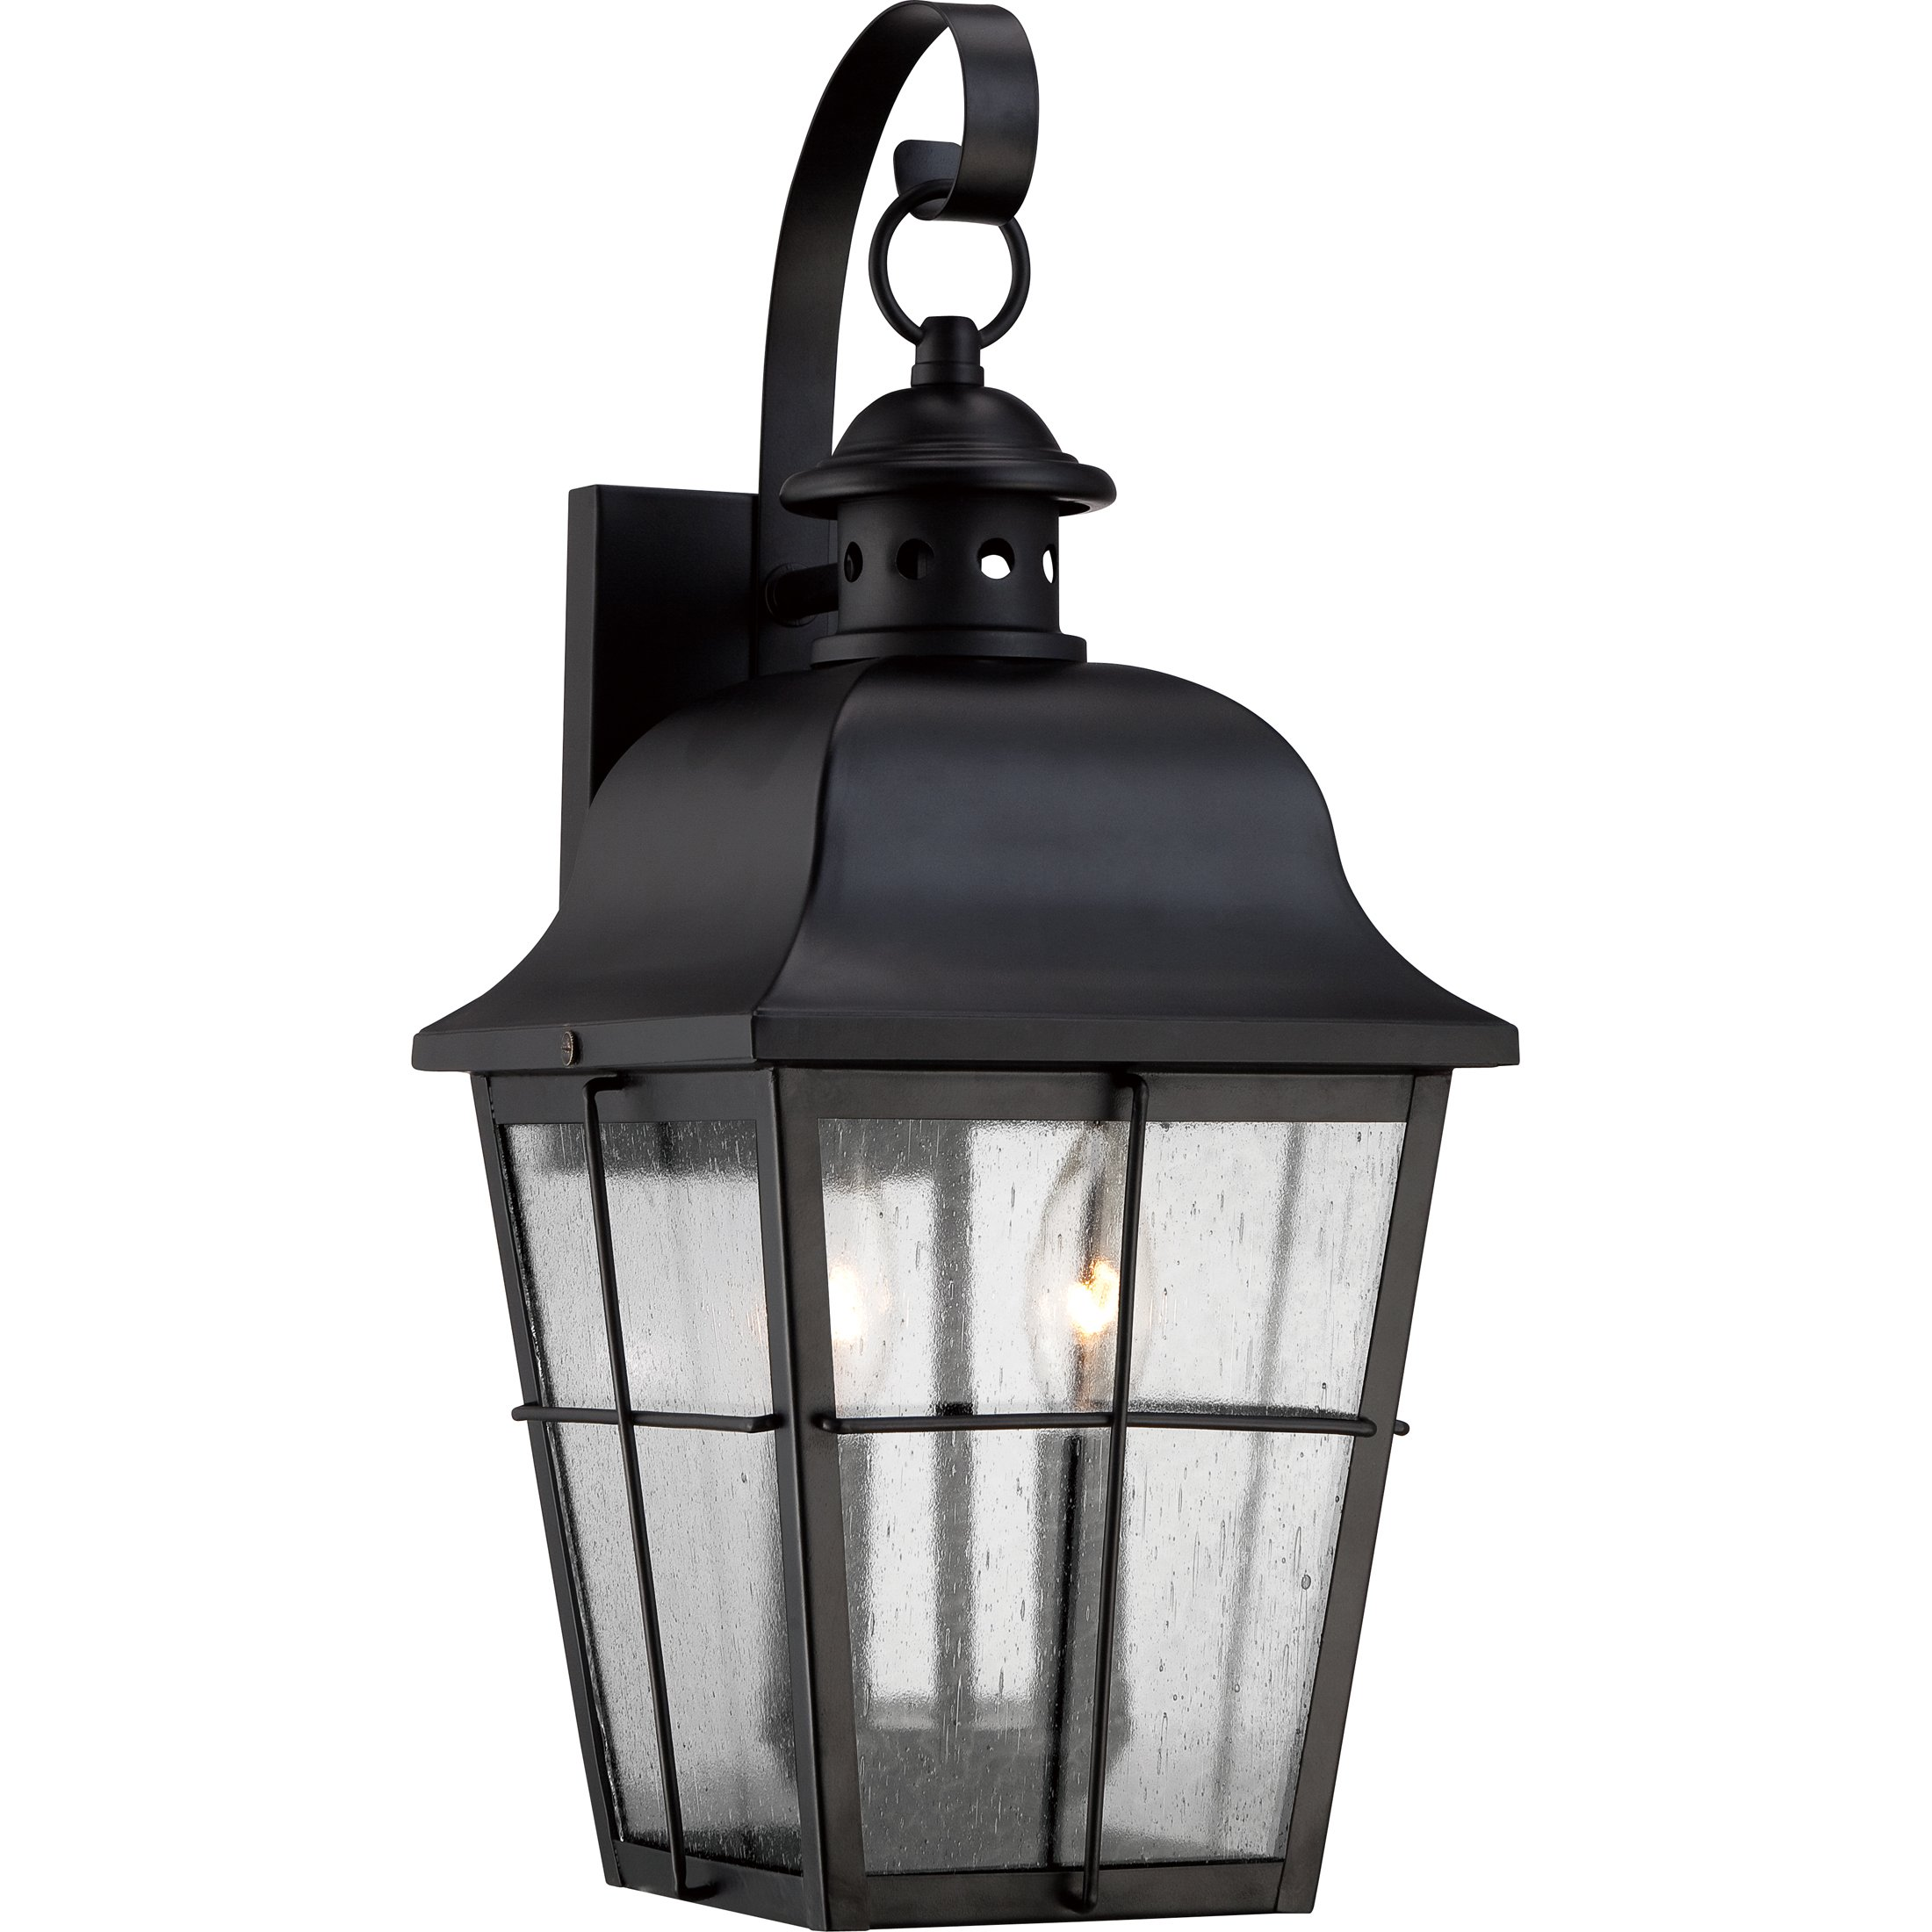 Quoizel MHE8409K Millhouse with Mystic Black Finish and  Medium Wall Lantern,  Black